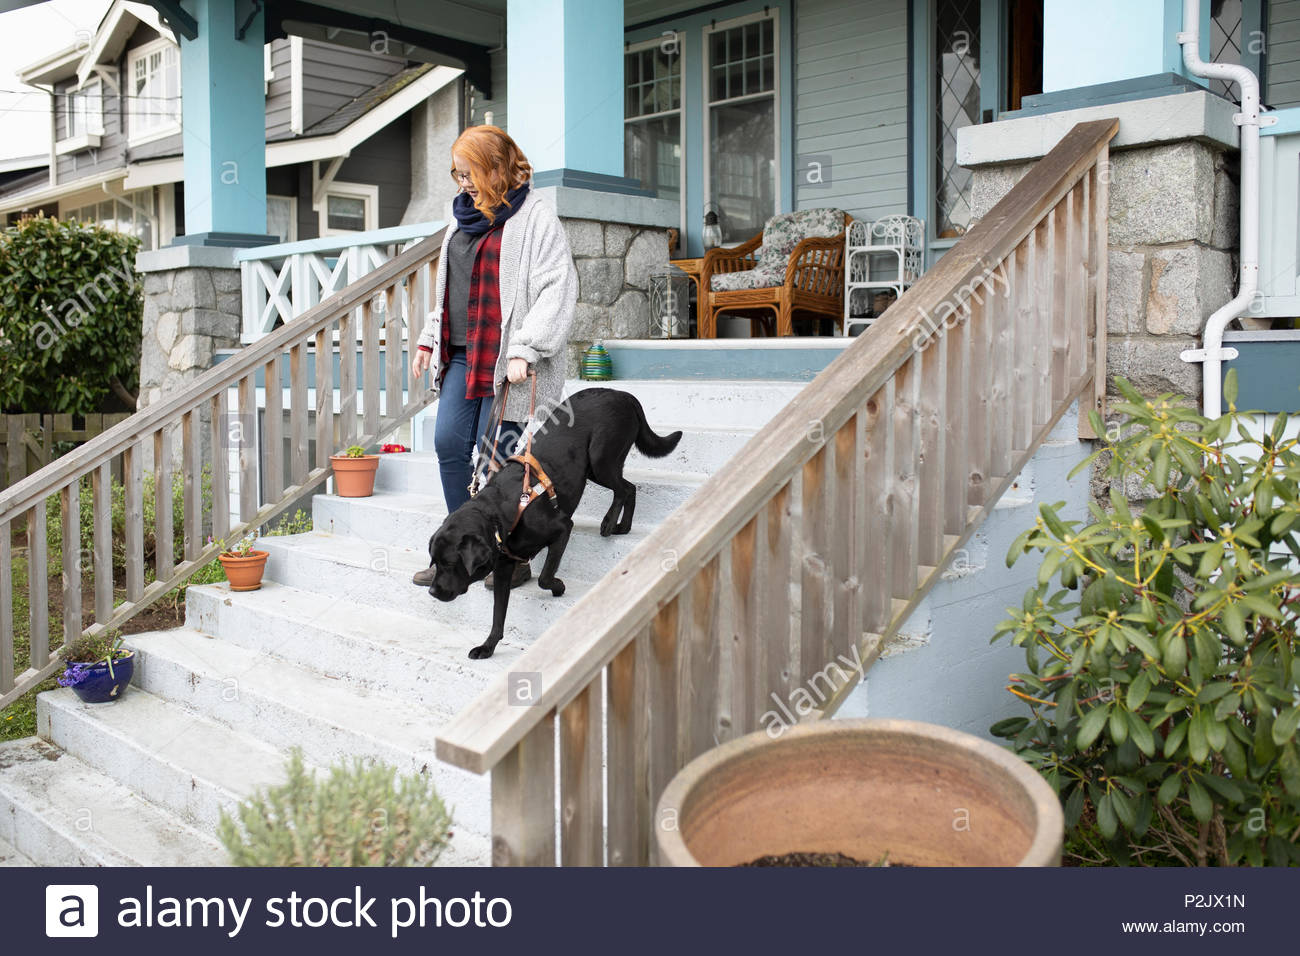 Seeing eye dog leading visually impaired woman down stairs - Stock Image